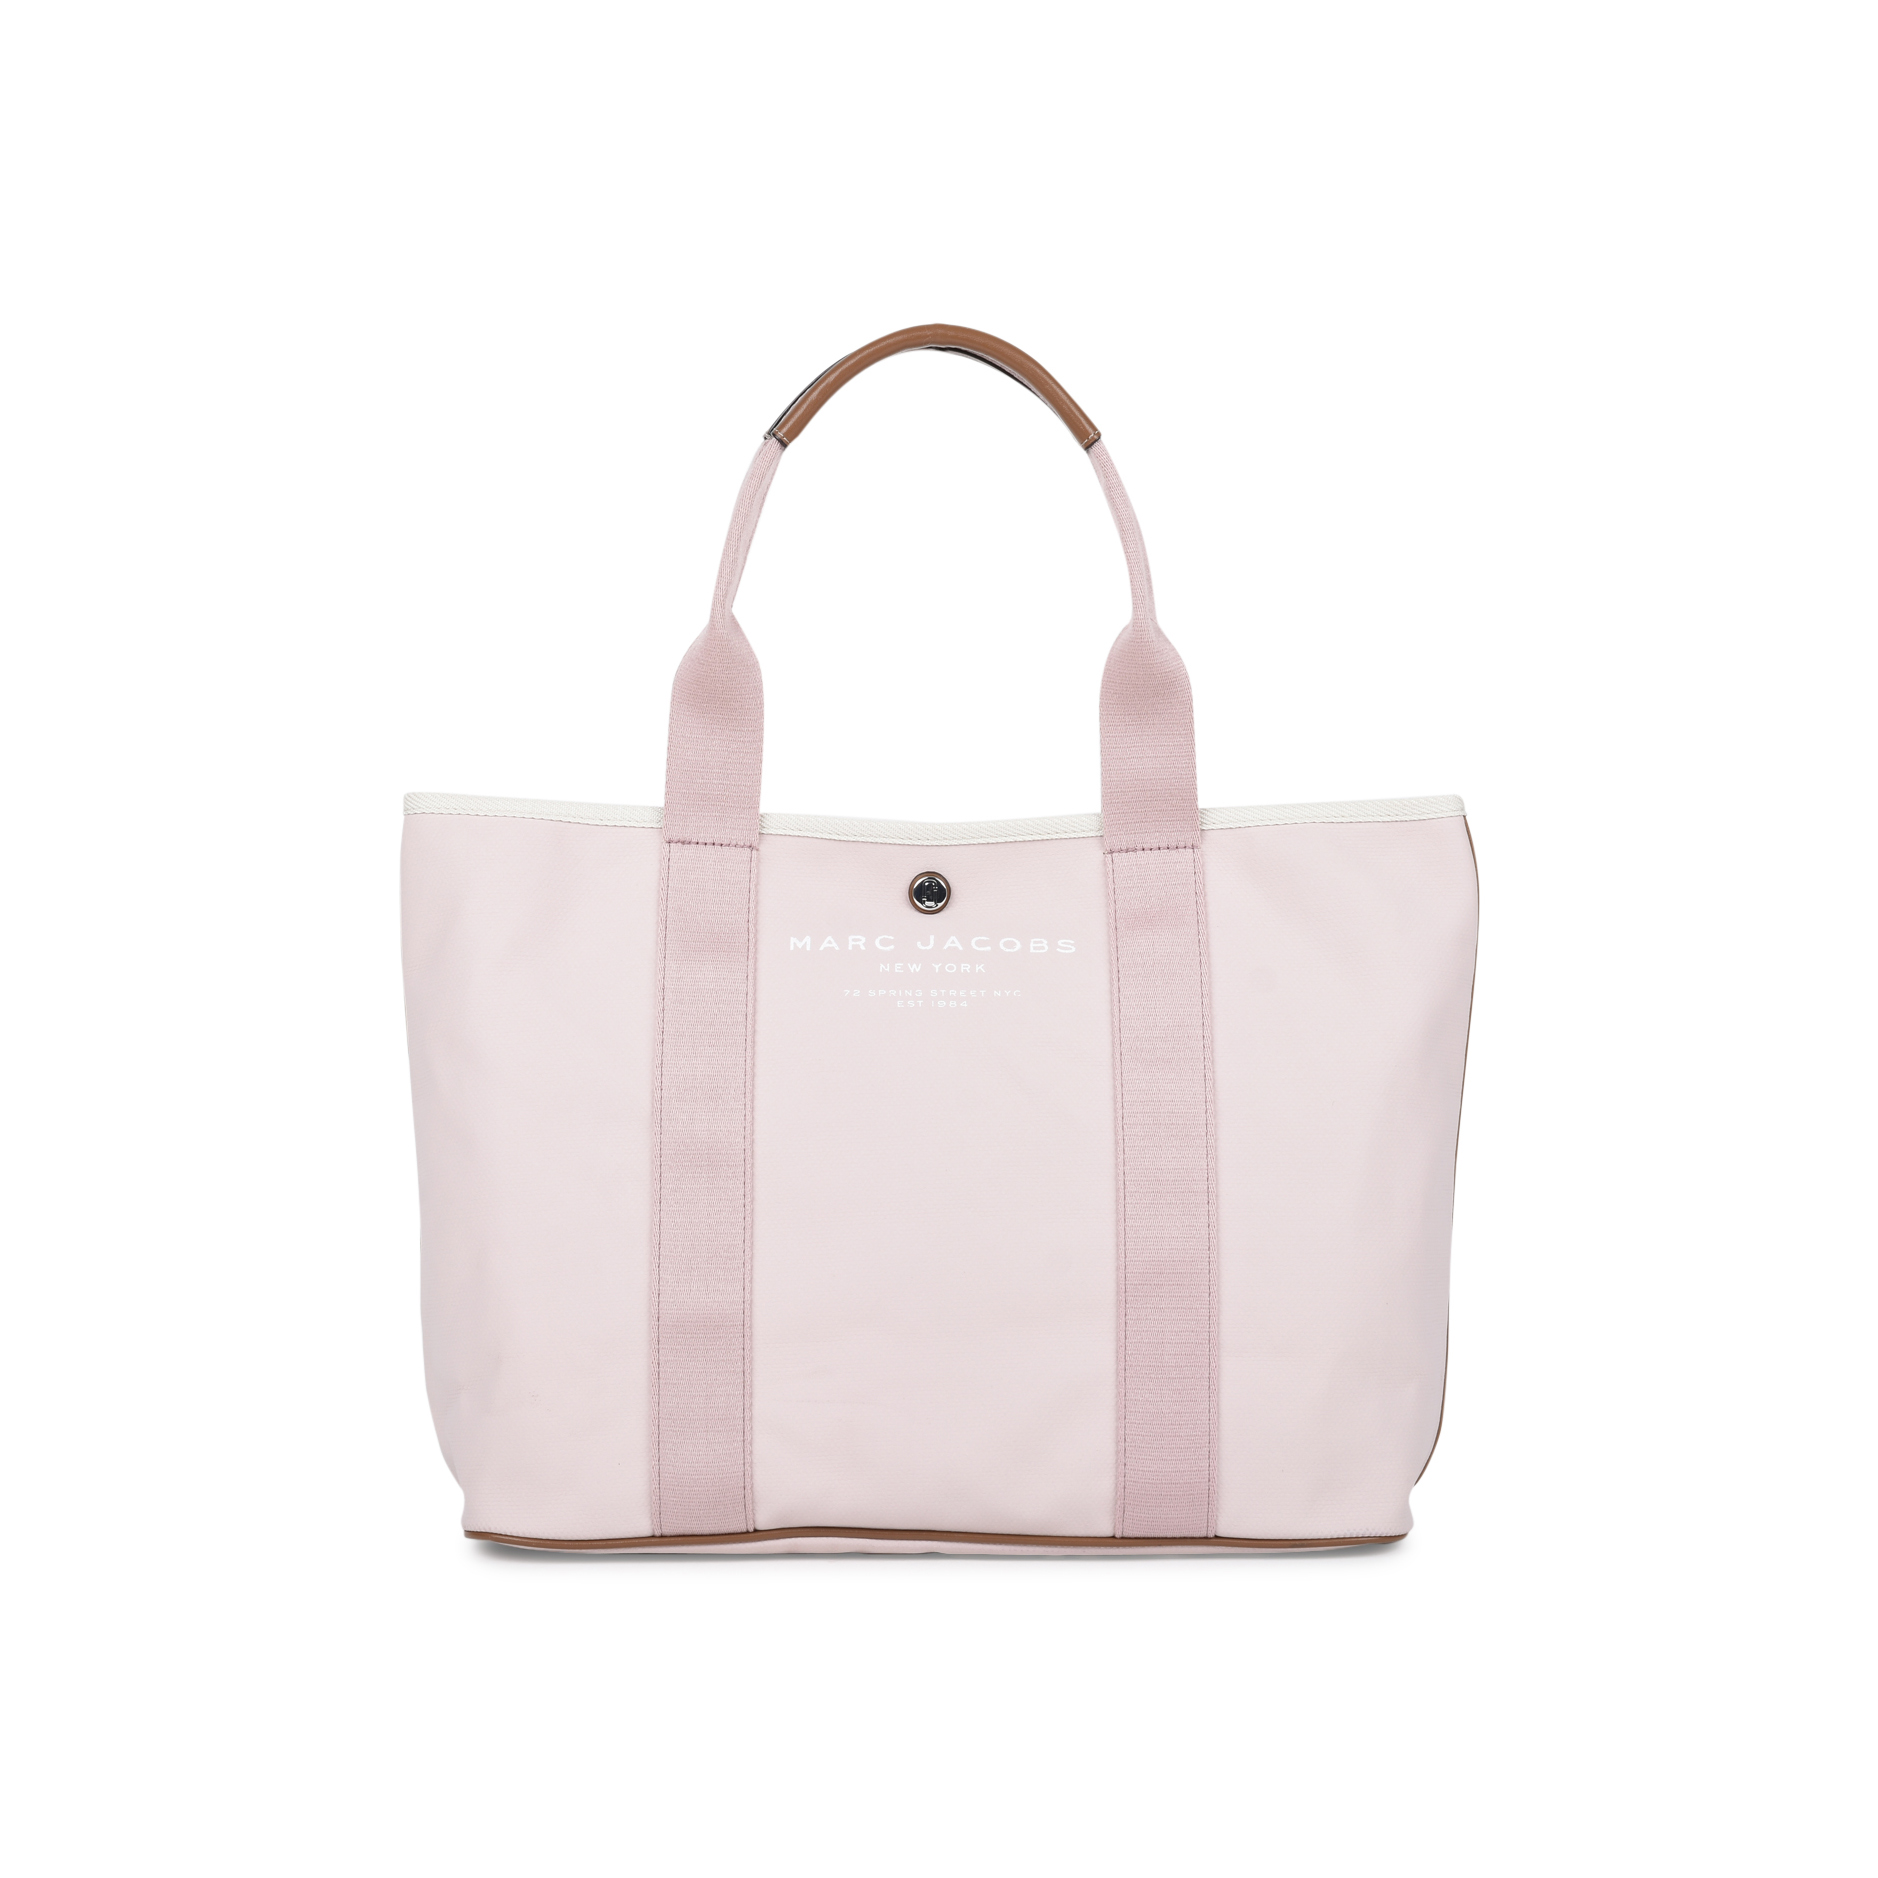 5002b90ee Authentic Second Hand Marc Jacobs East West Canvas Tote Bag (PSS-512-00005)  - THE FIFTH COLLECTION